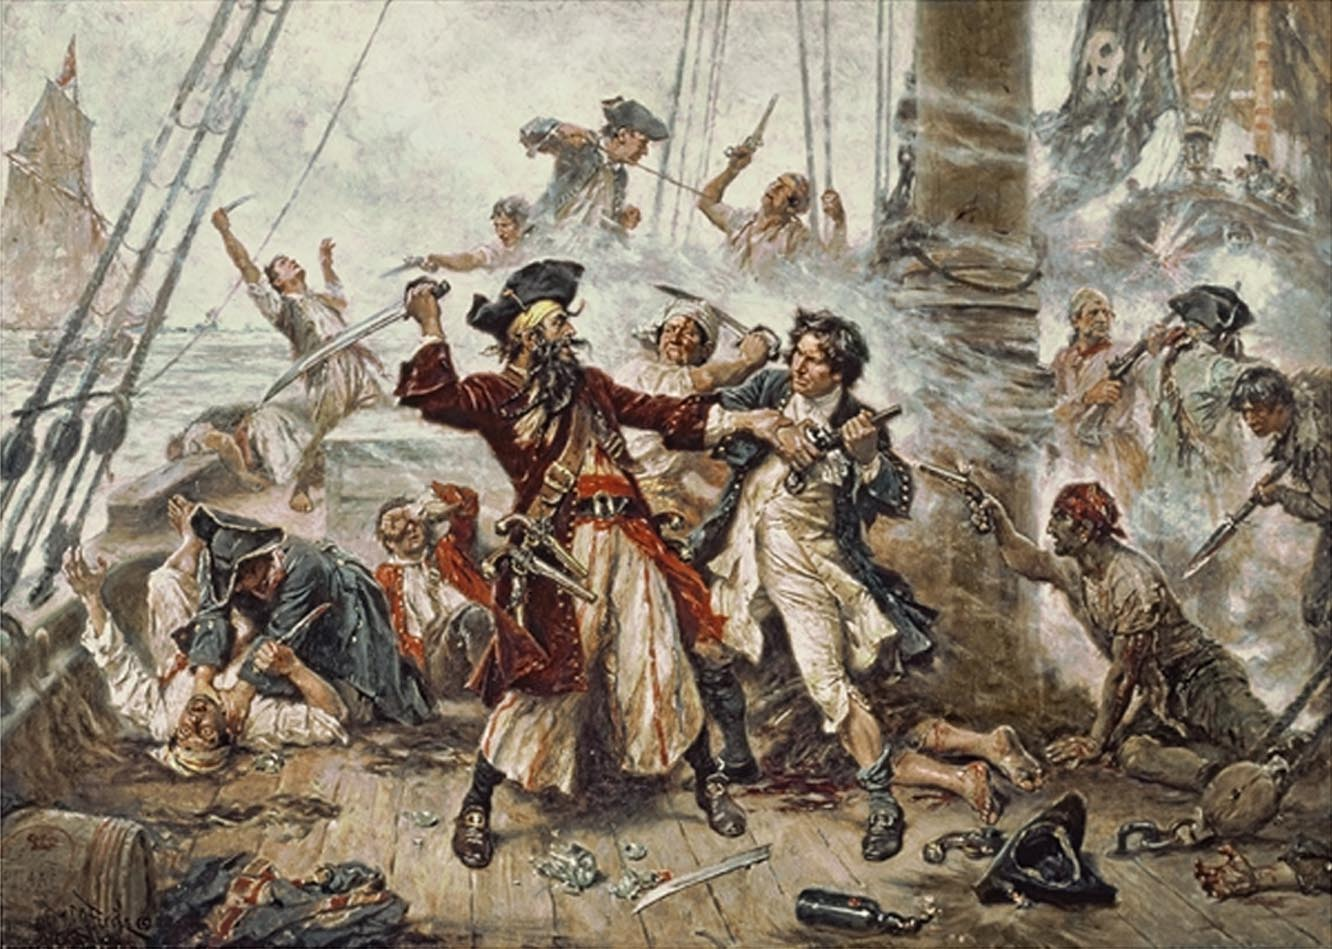 Pirate Crew Outsourcing History